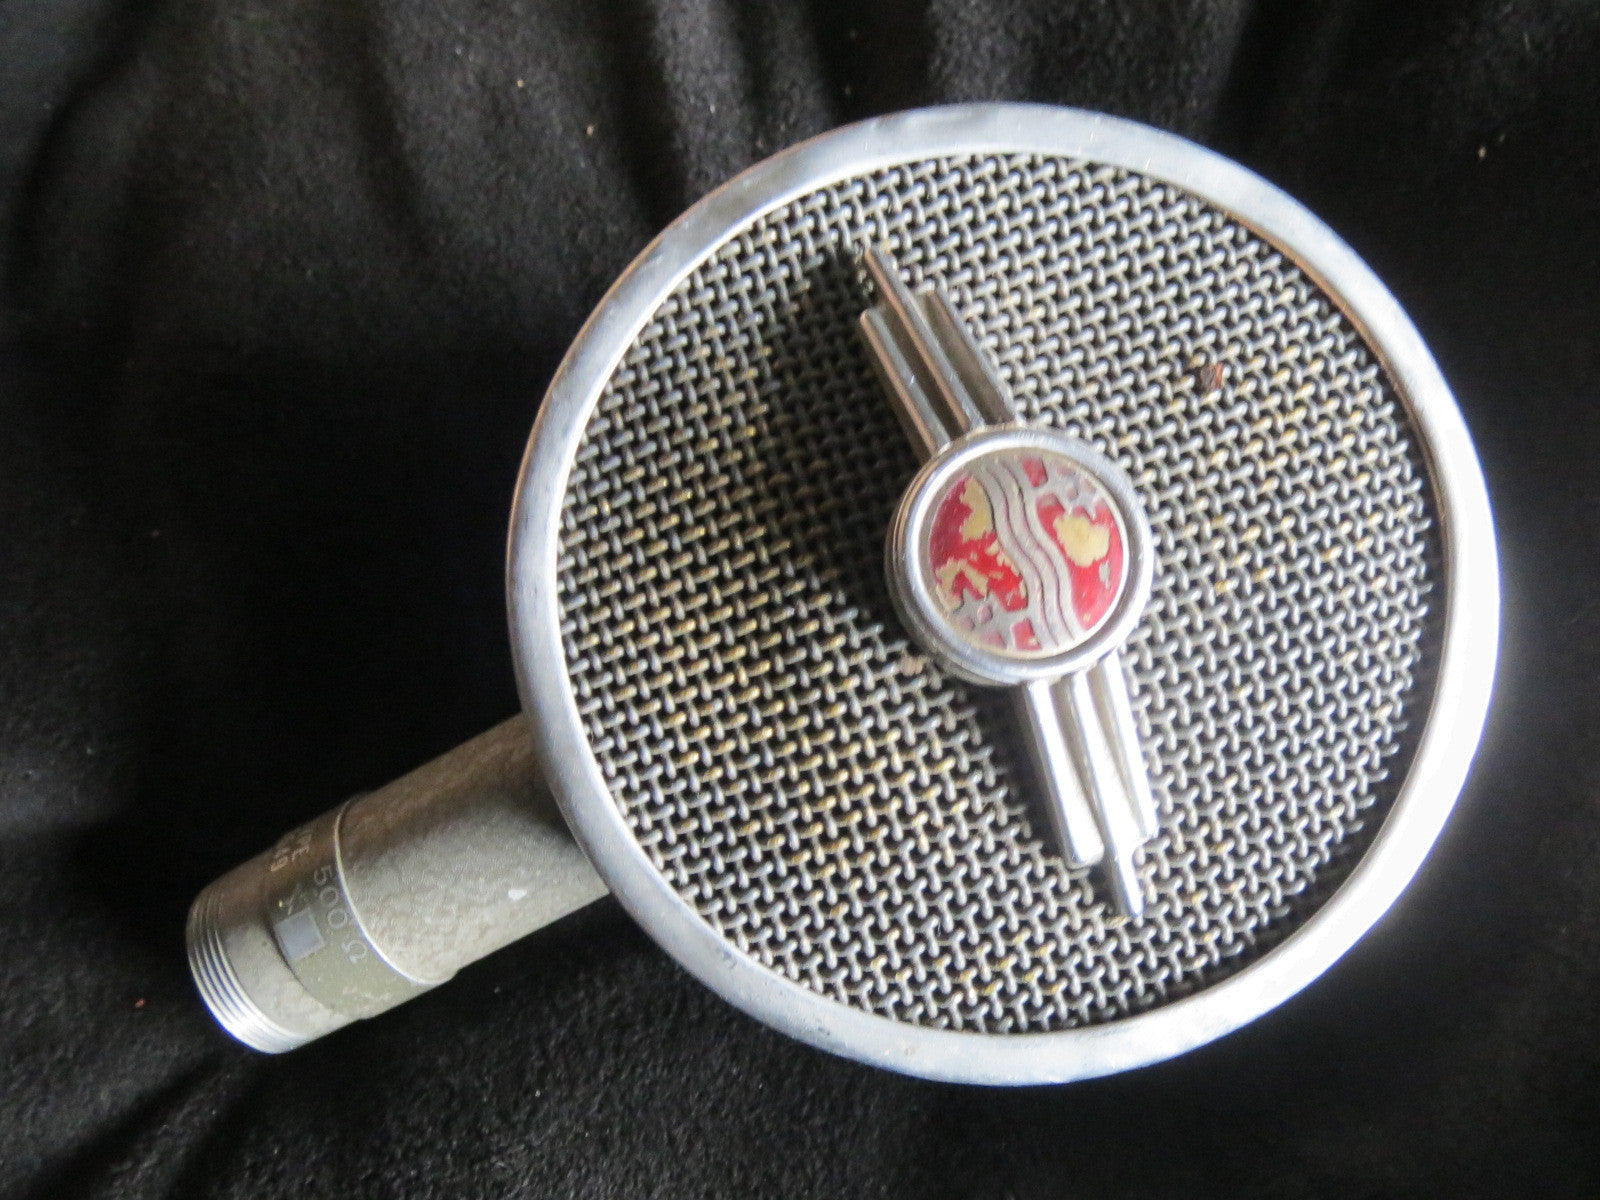 PHILIPS 9549 RARE VINTAGE CARDIOID DYNAMIC MICROPHONE INCLUDING XLR CABLE